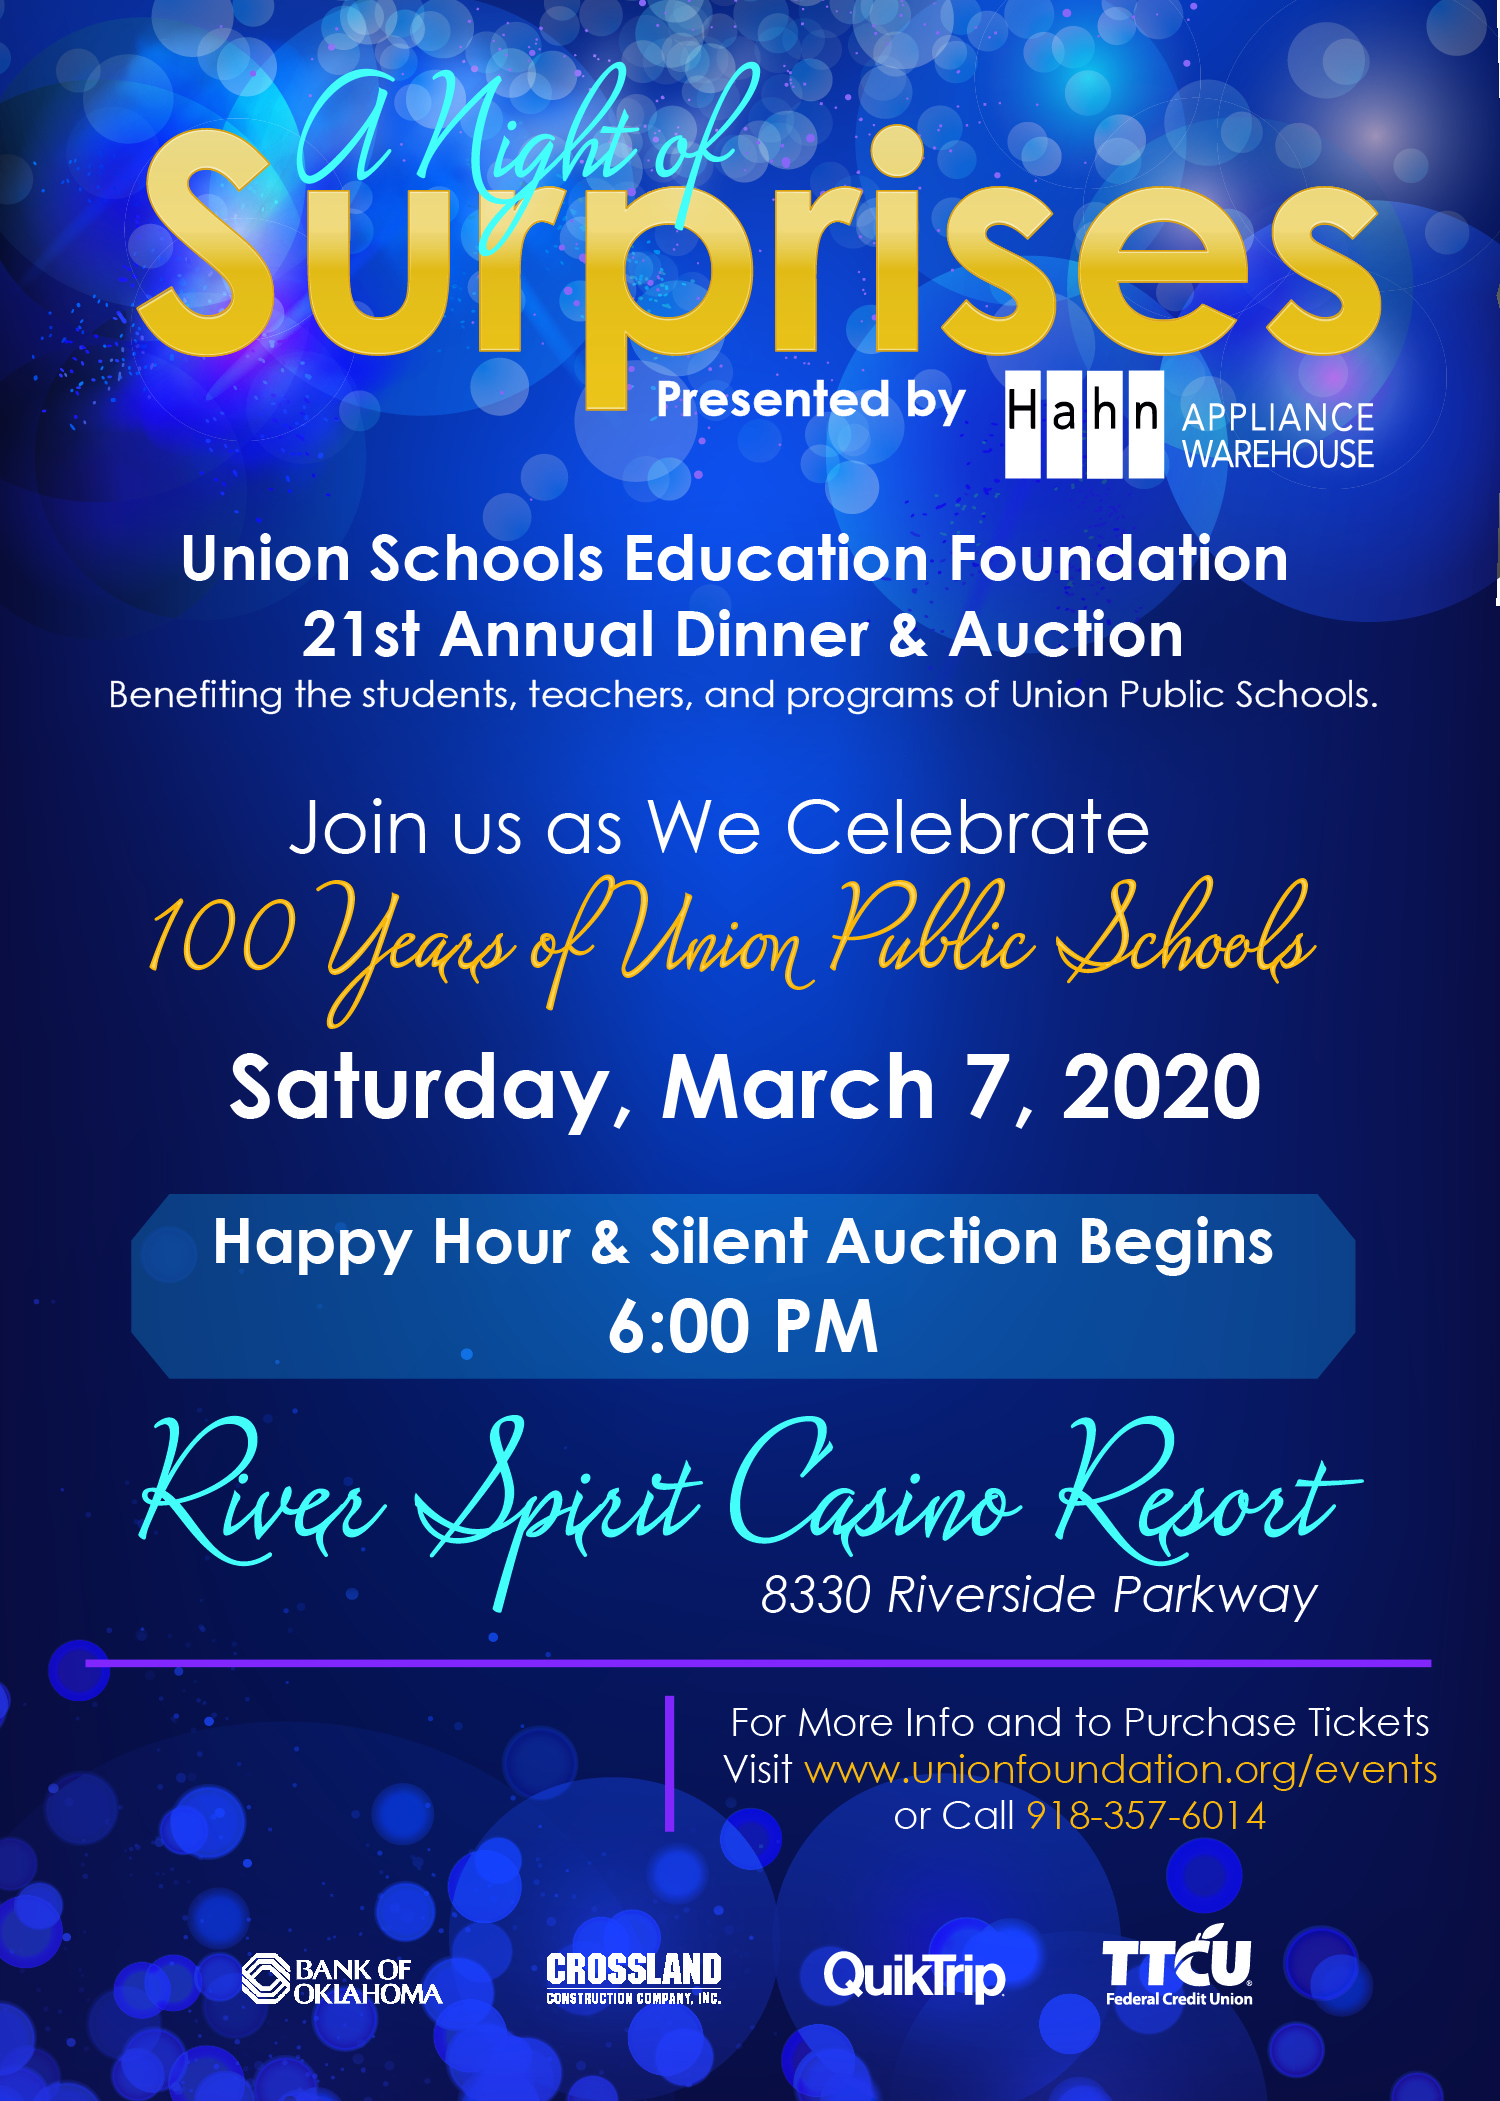 Join us for the 21st Annual USEF Dinner and Auction presented by @UnionFound and @HahnAppliance benefiting the students and teachers of @UnionSchools. Buy your tickets today